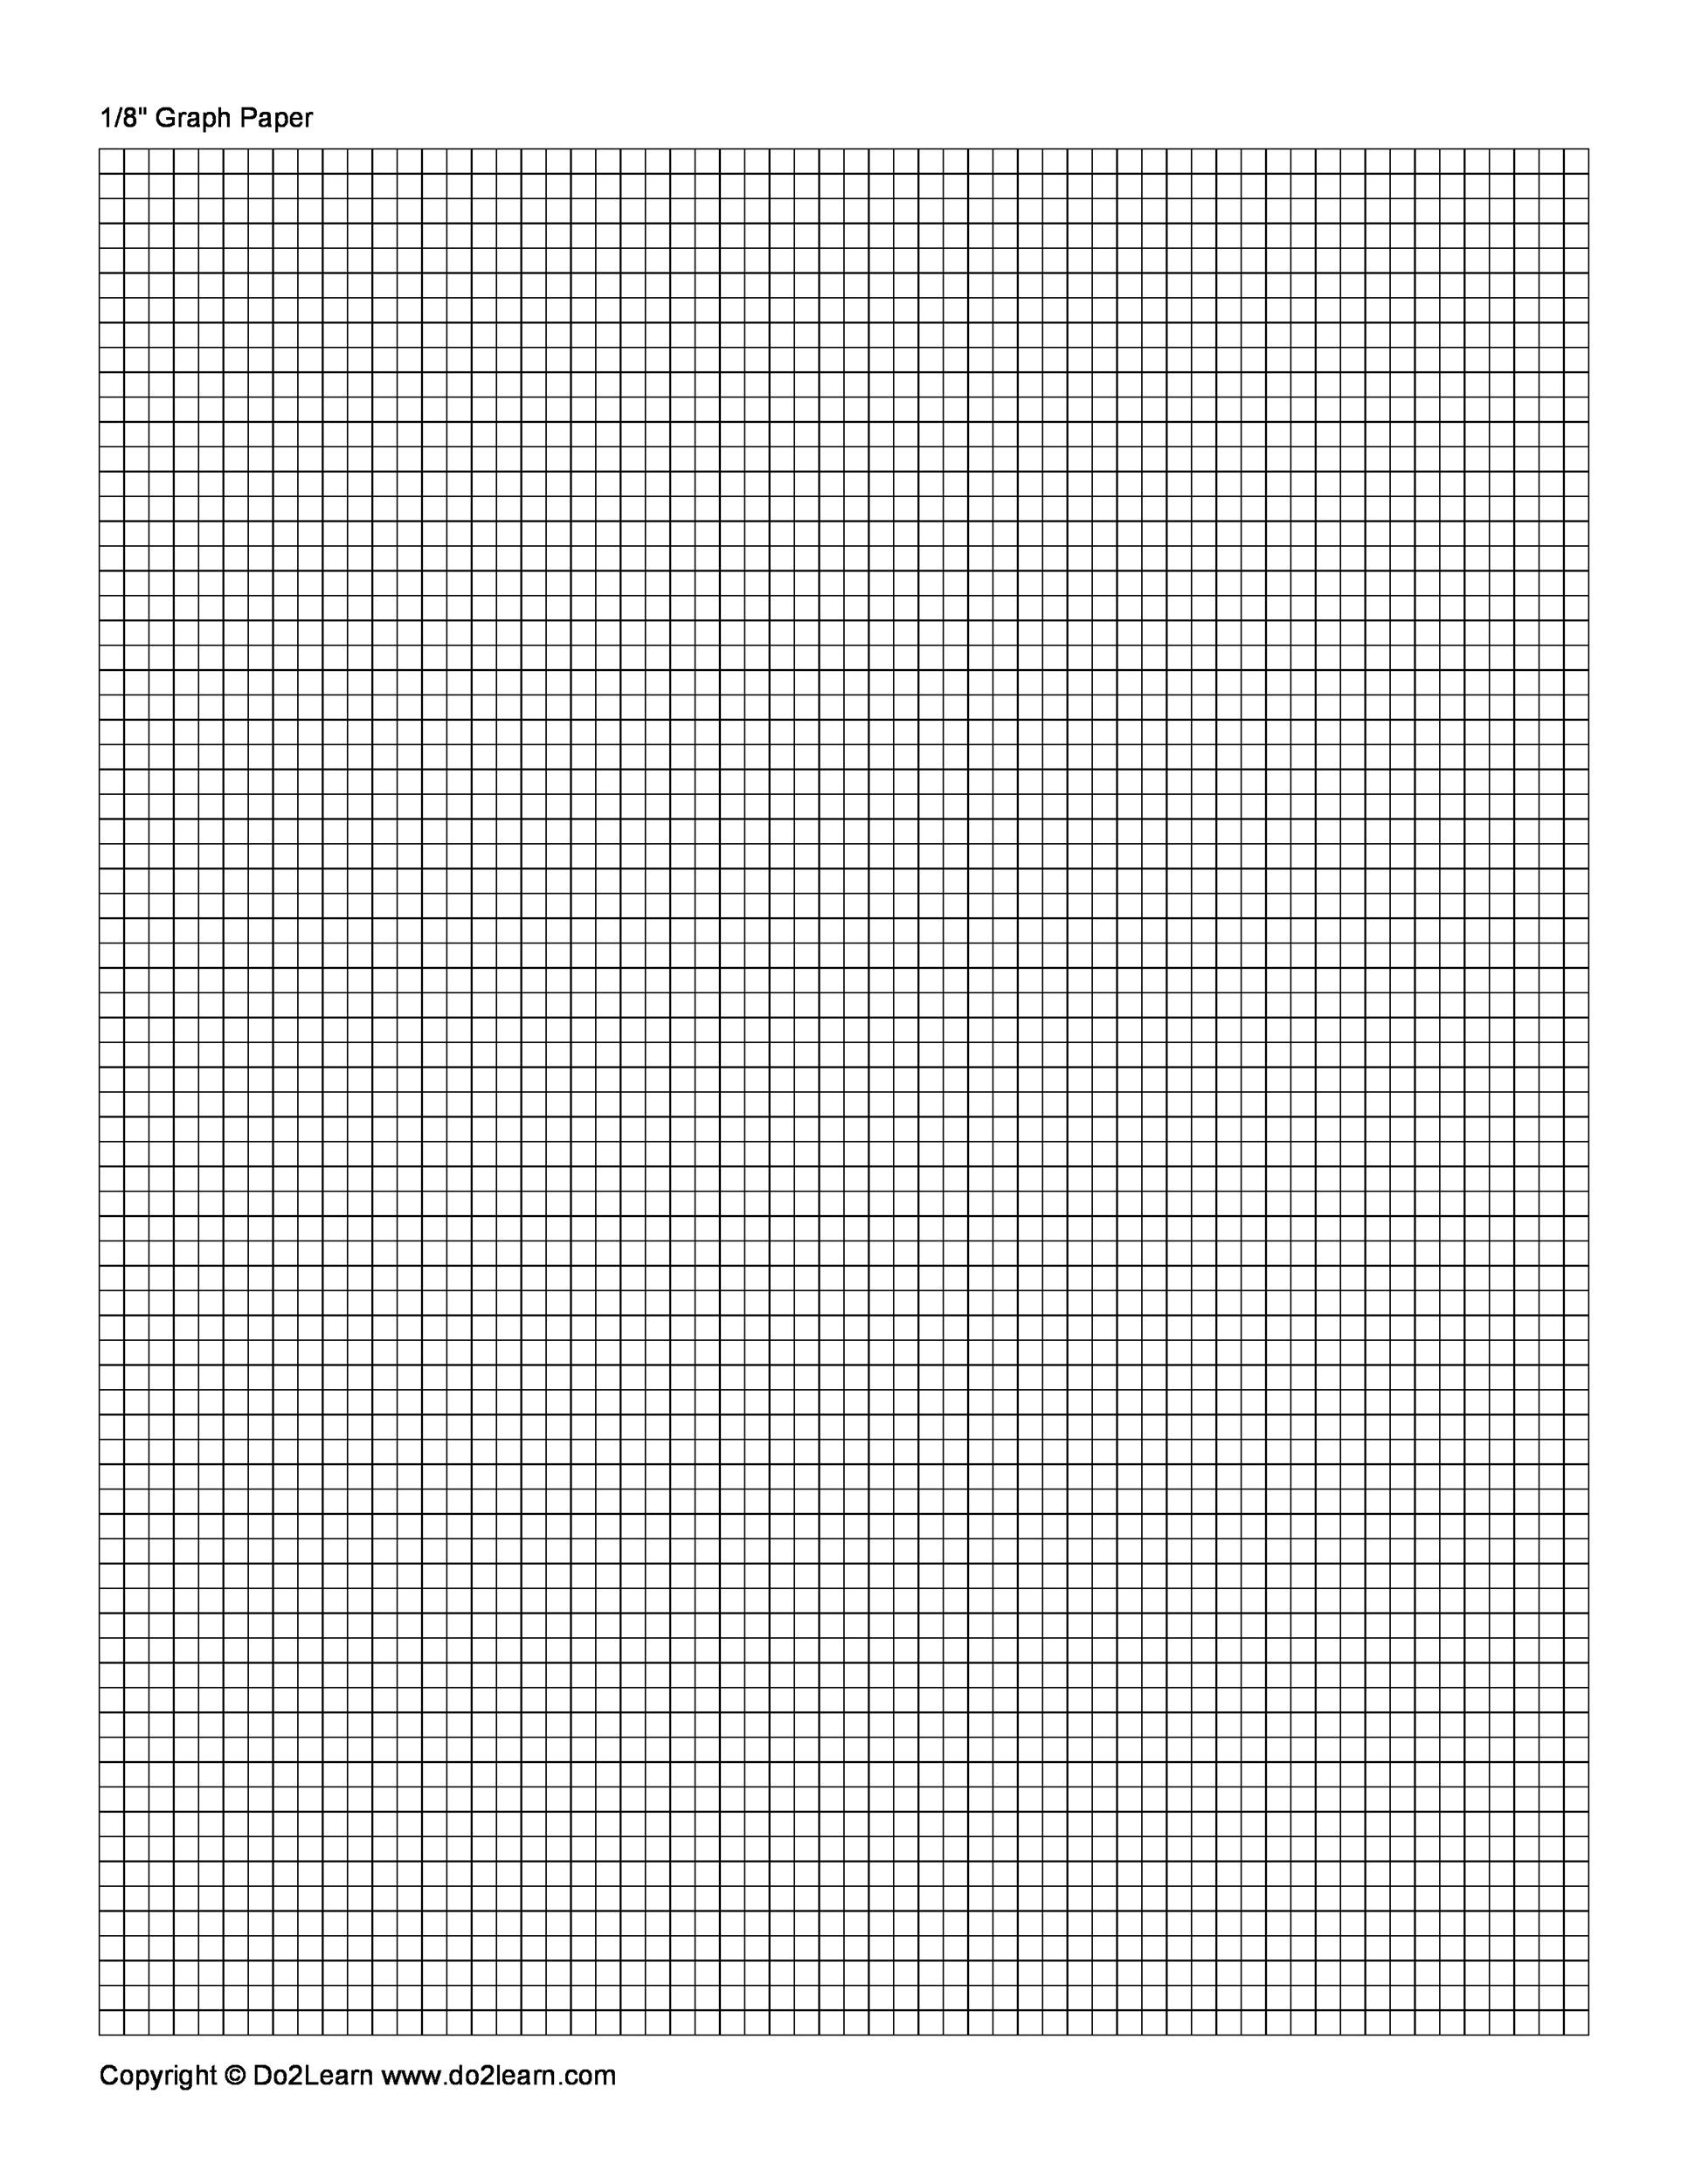 worksheet Graph Paper With X And Y Axis 30 free printable graph paper templates word pdf template lab 01